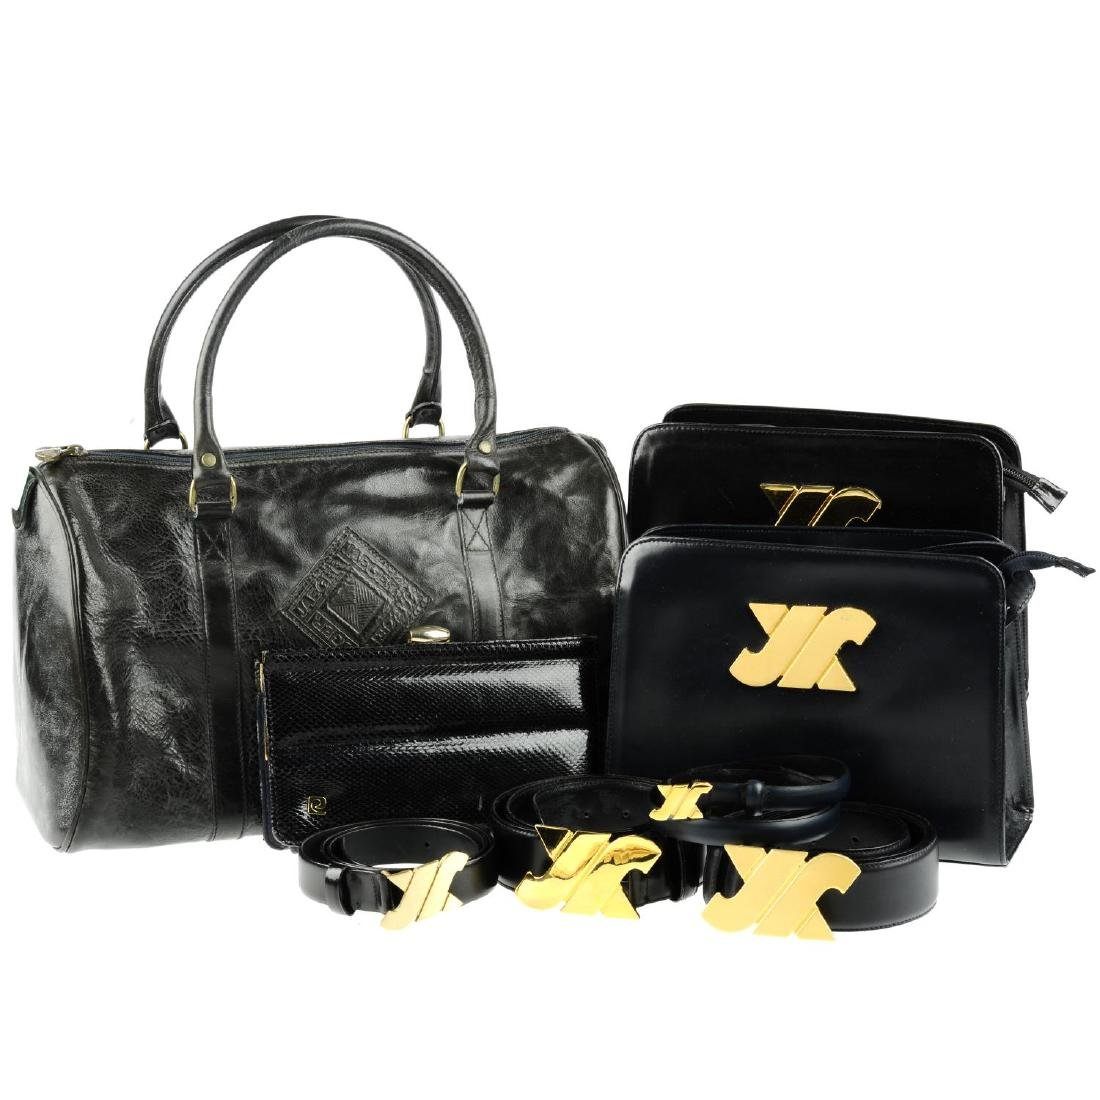 JAEGER - a selection of vintage handbags and belts. To